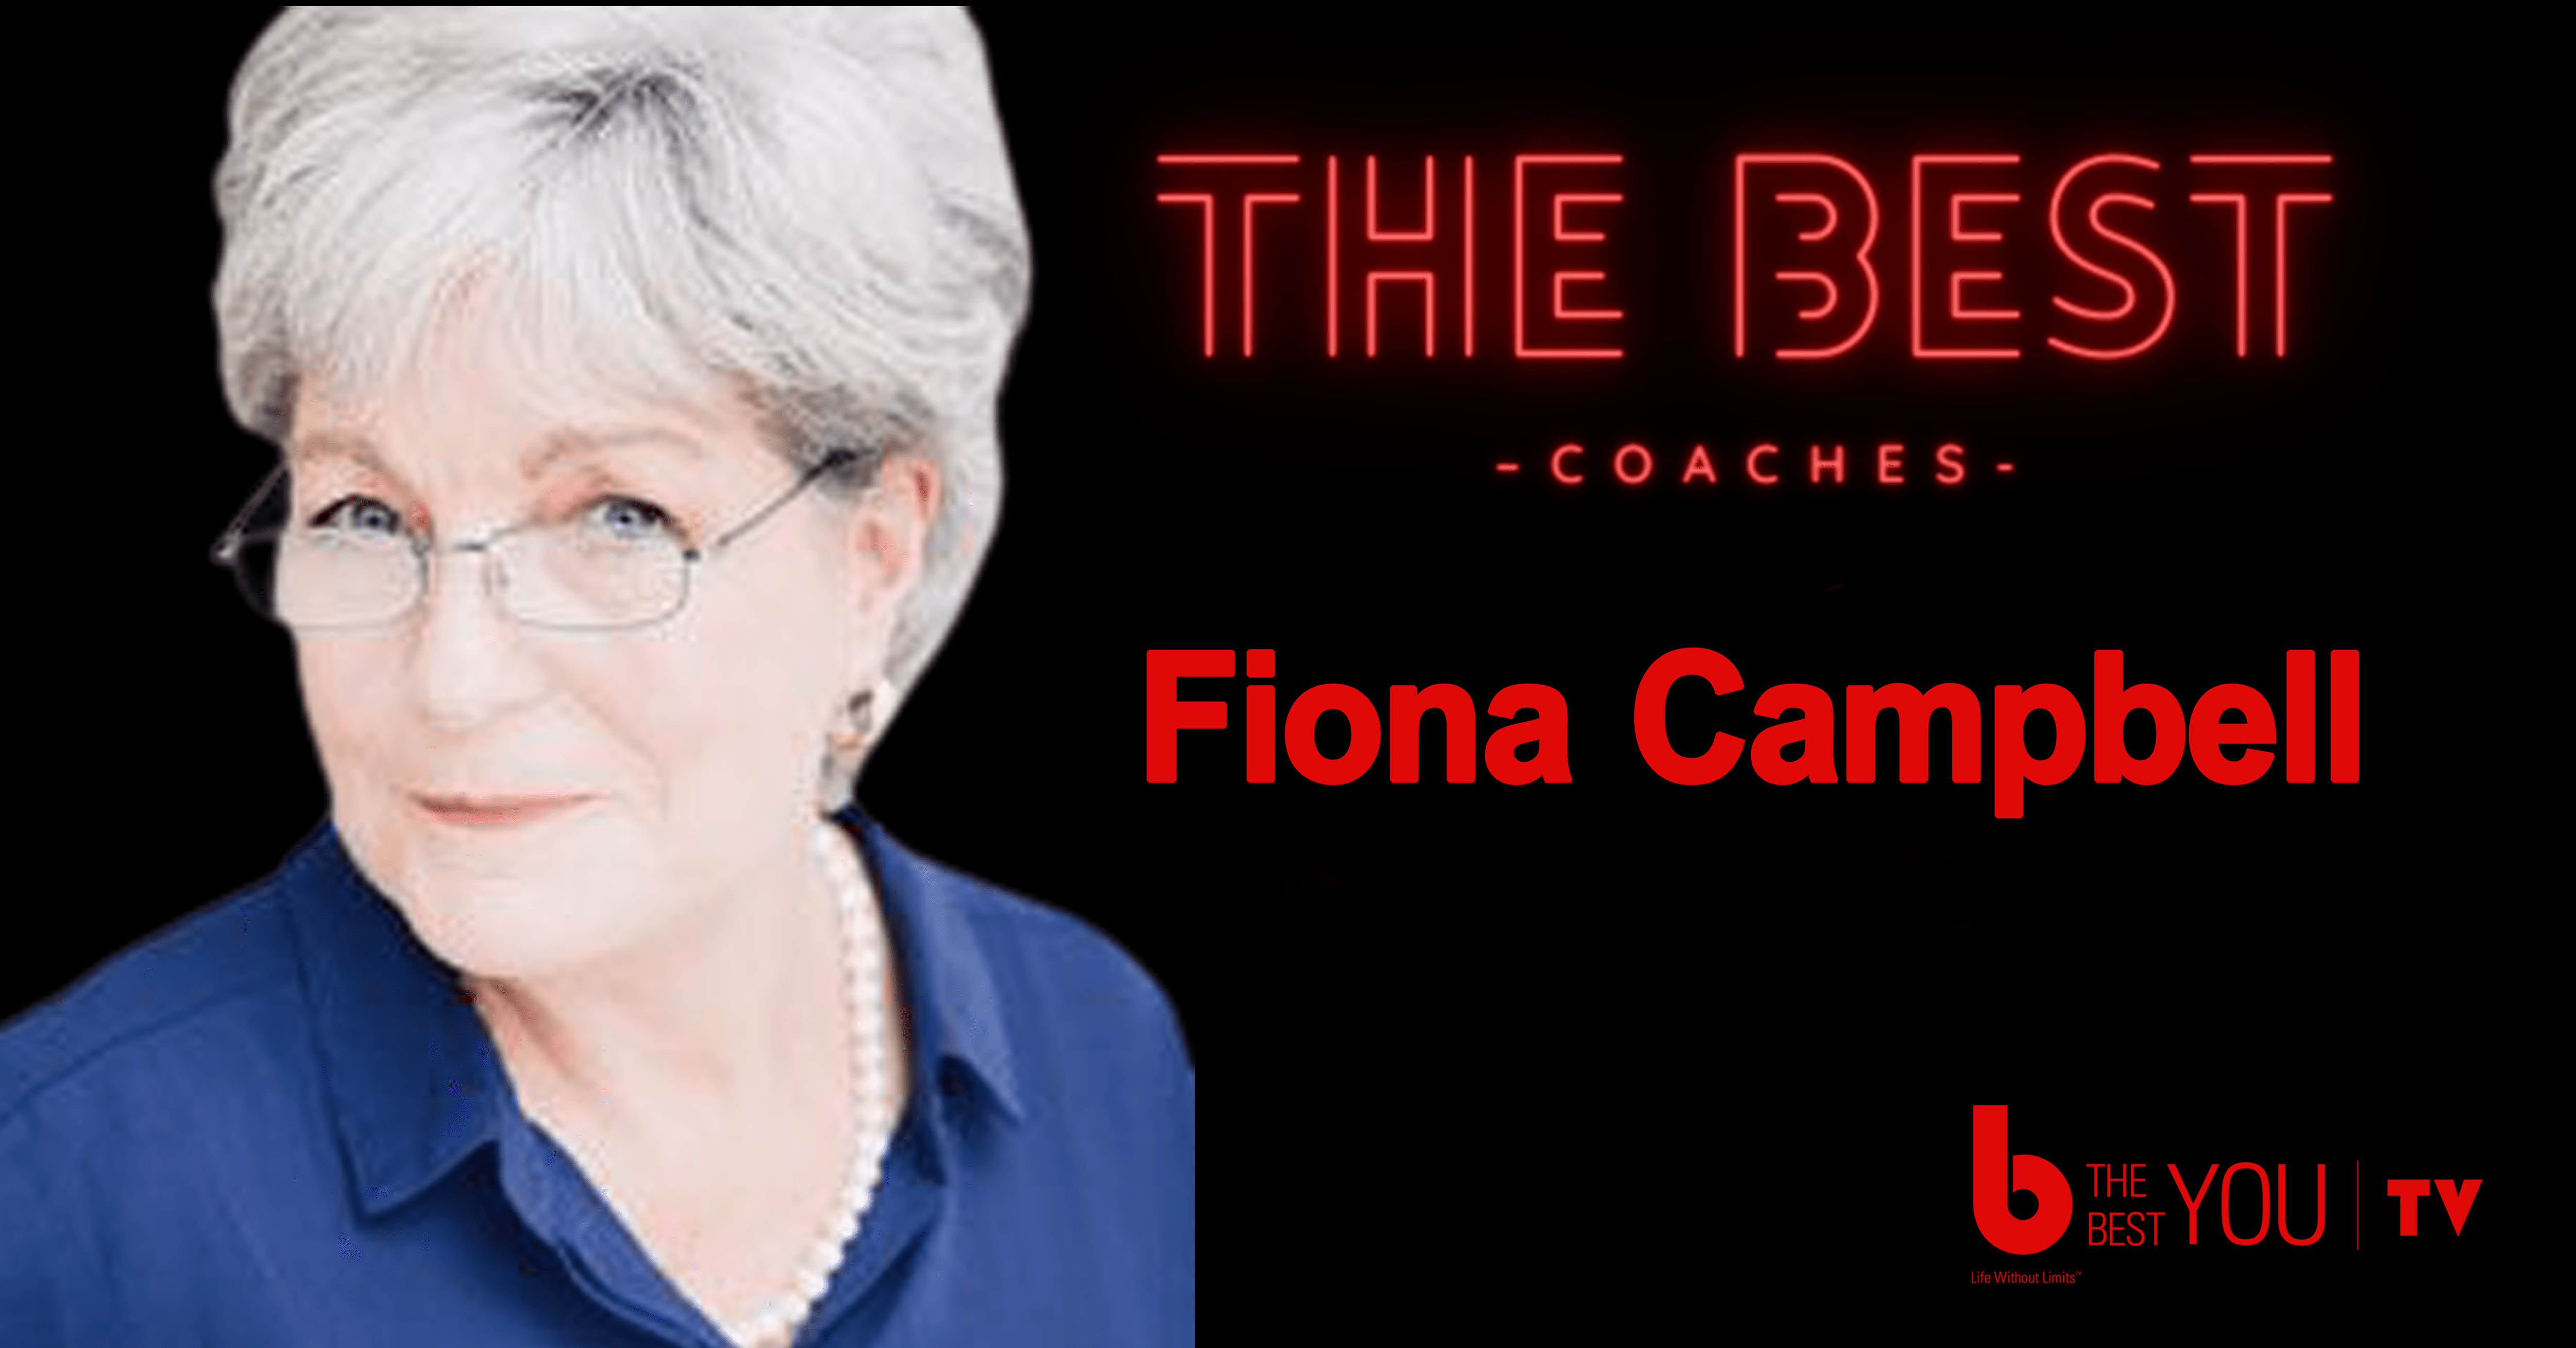 Fiona Campbell